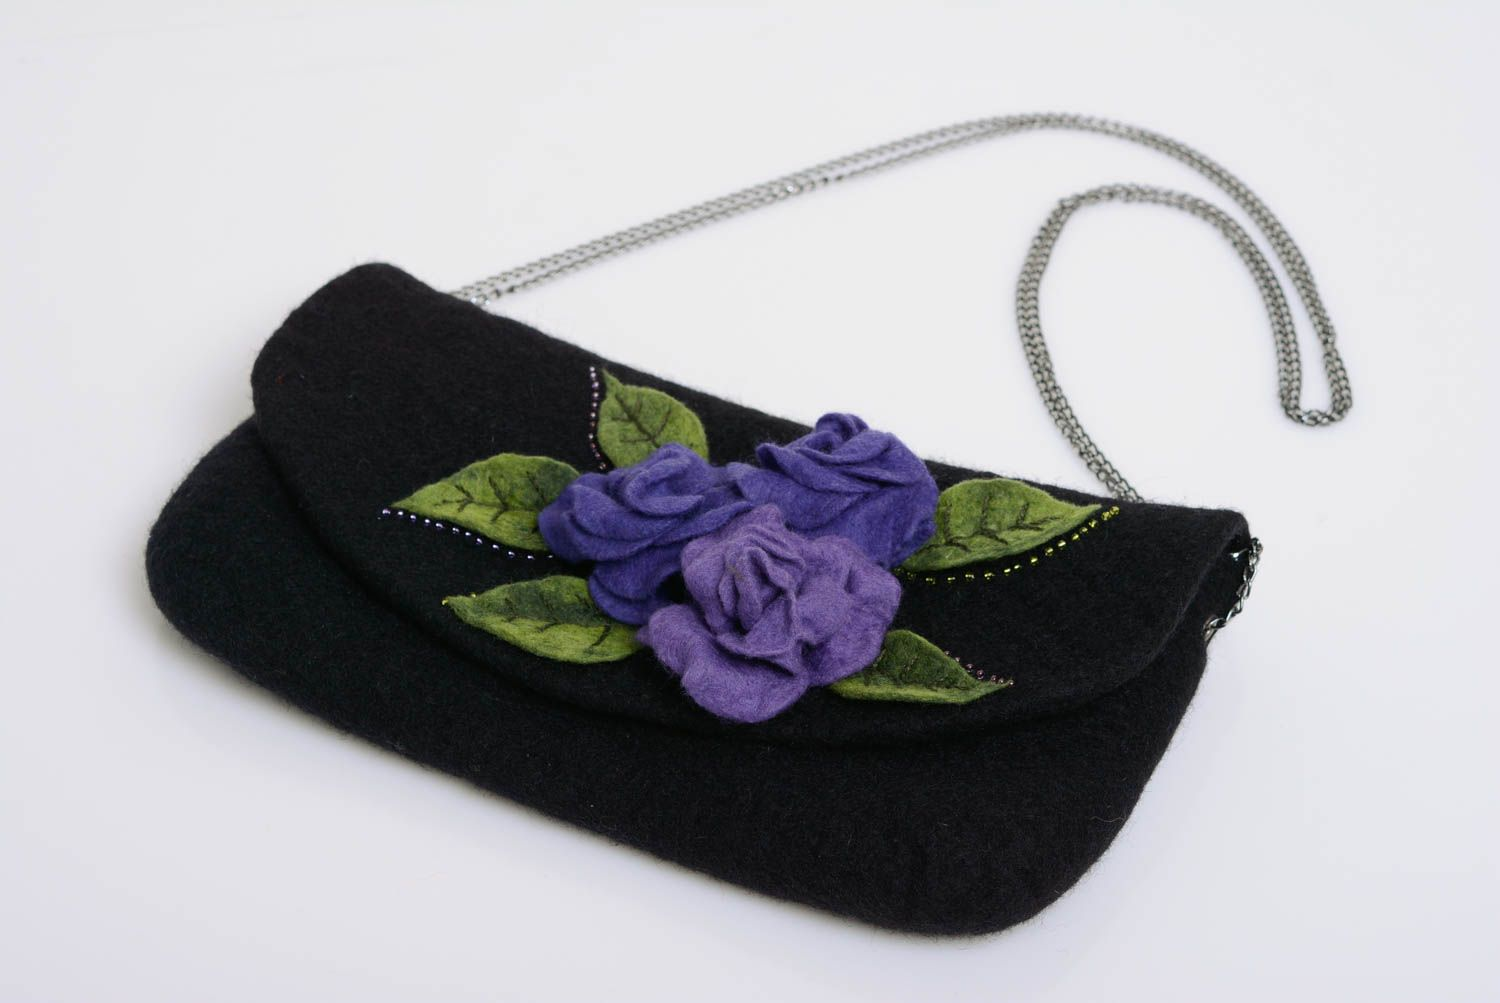 Black handbag wool felting technique on metal chain handmade designer purse photo 2